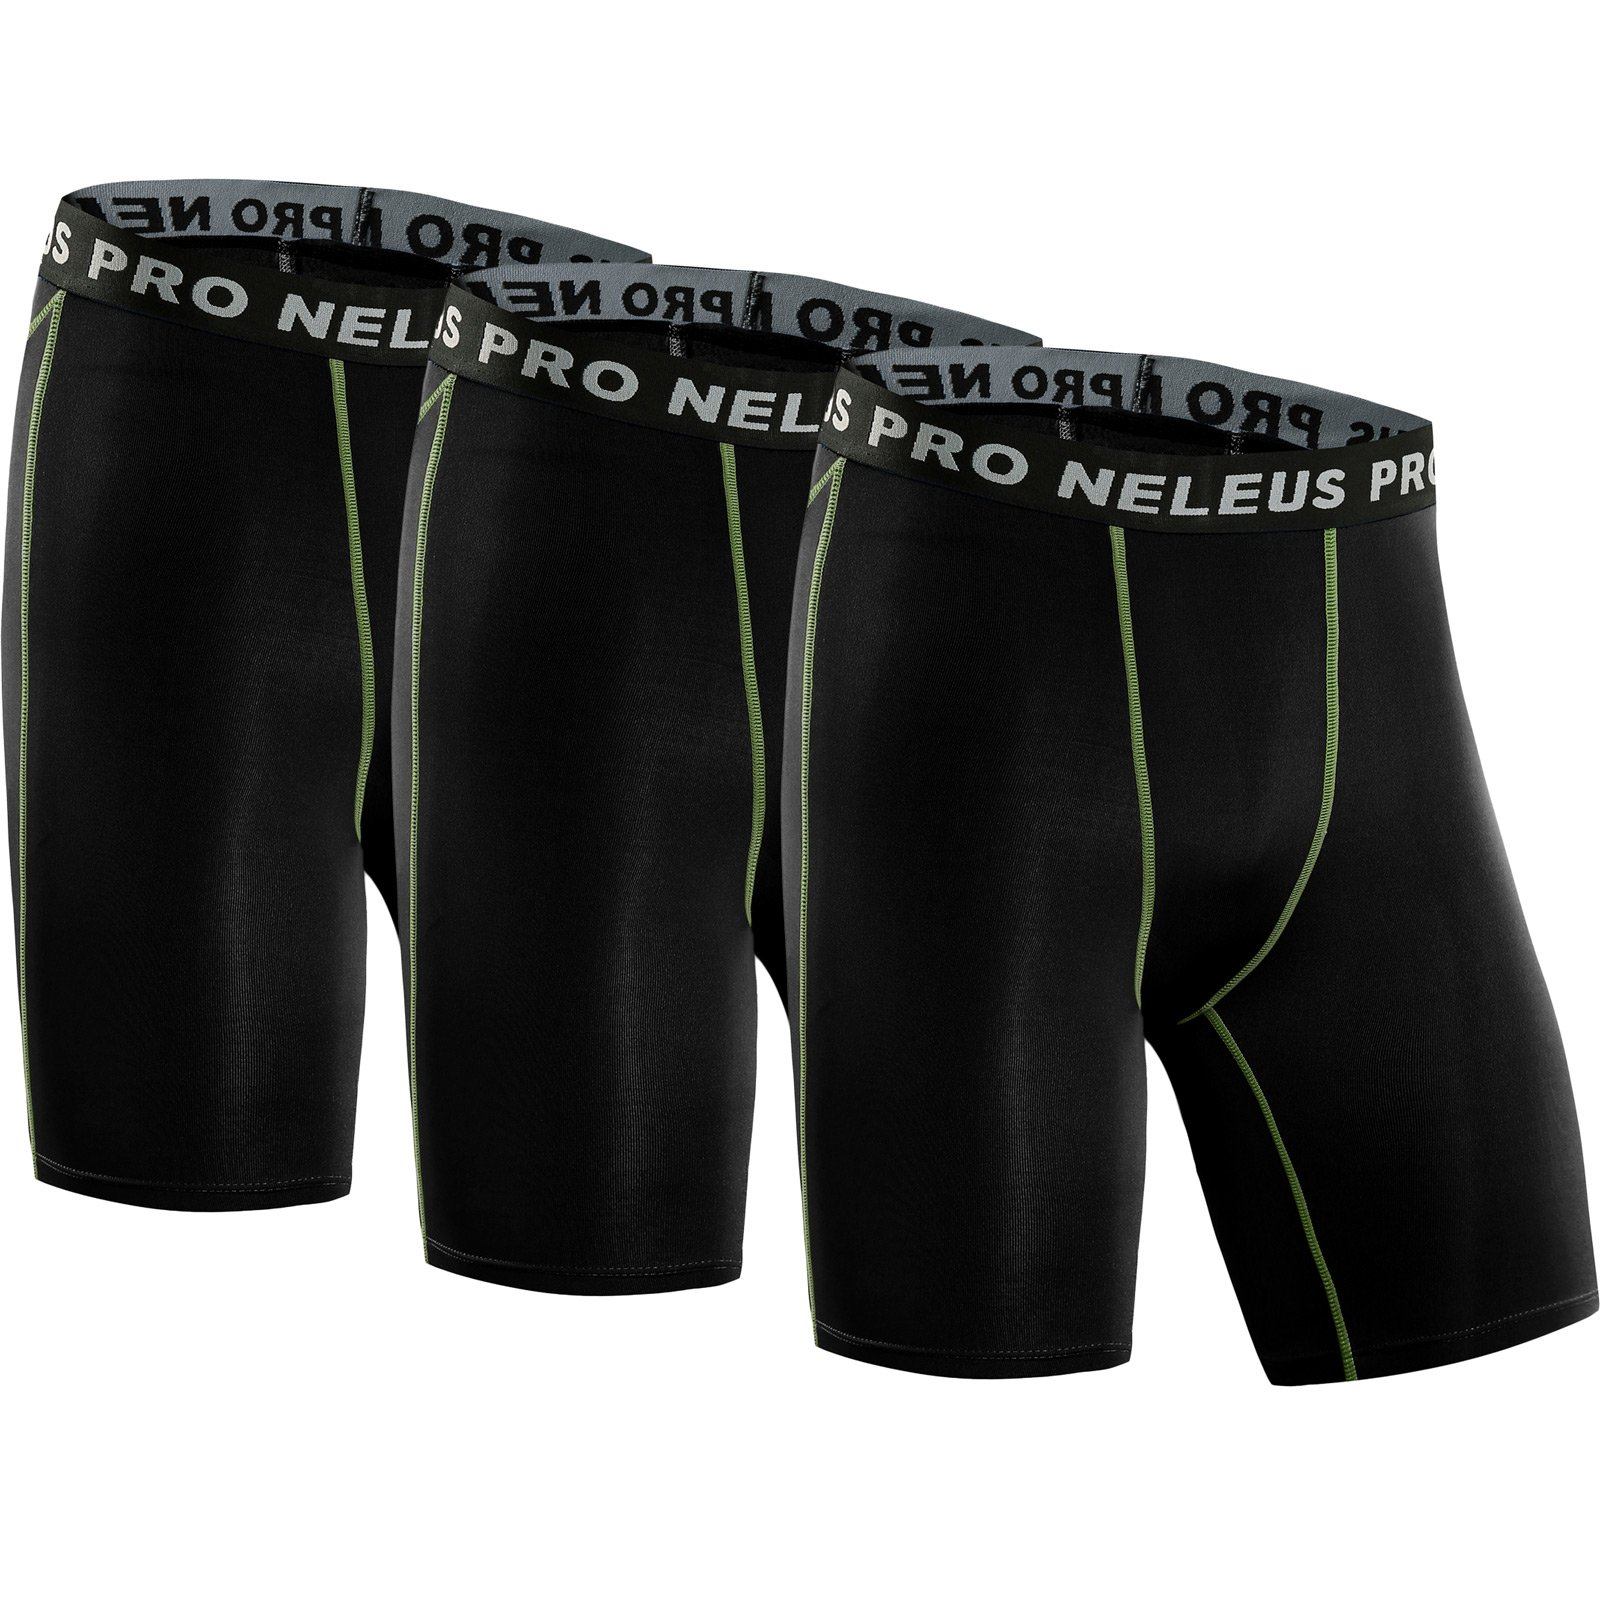 Neleus Men's 3 Pack Compression Short,047,Black,US S,EU M by Neleus